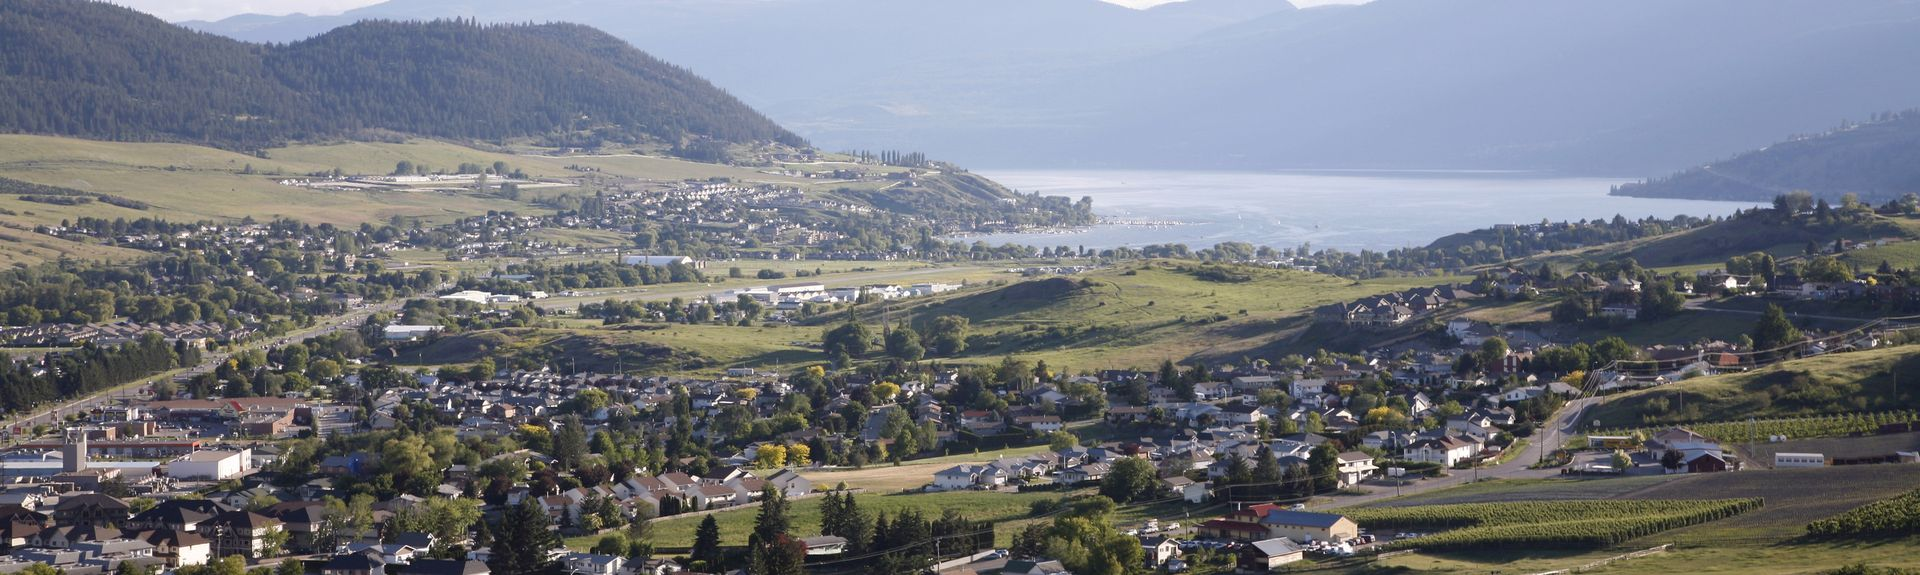 Vernon, British Columbia, CA